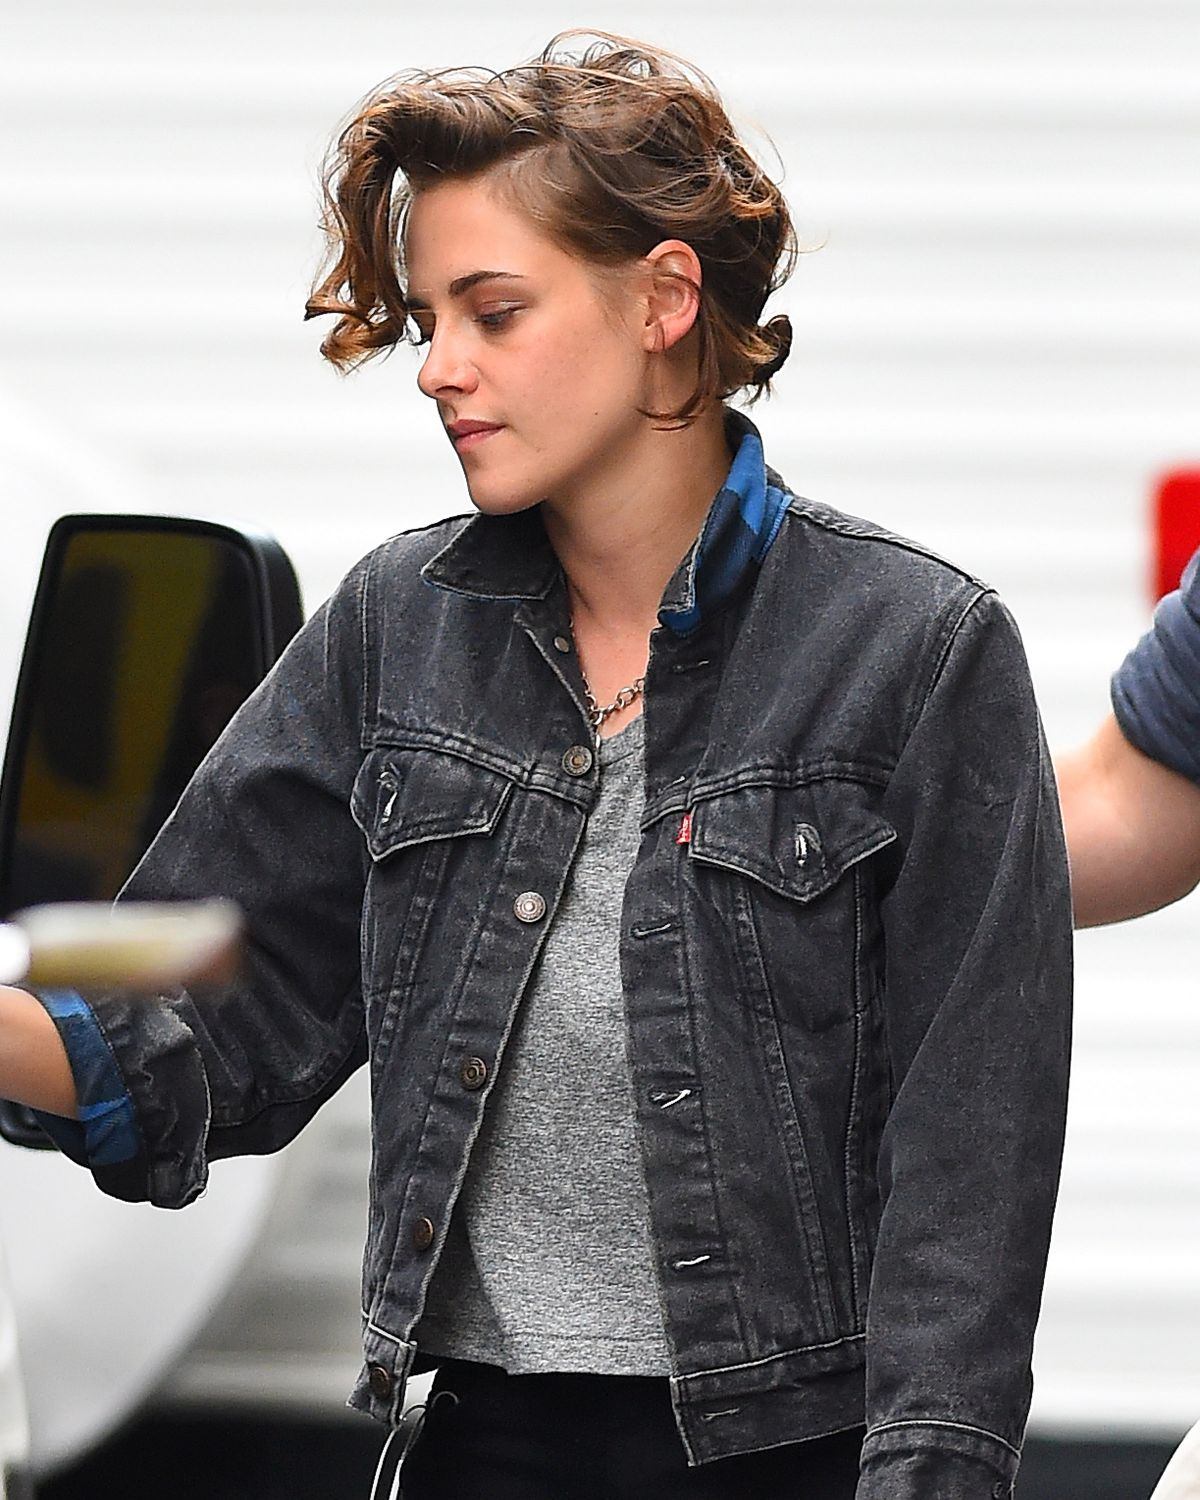 image Kristen stewart on the road